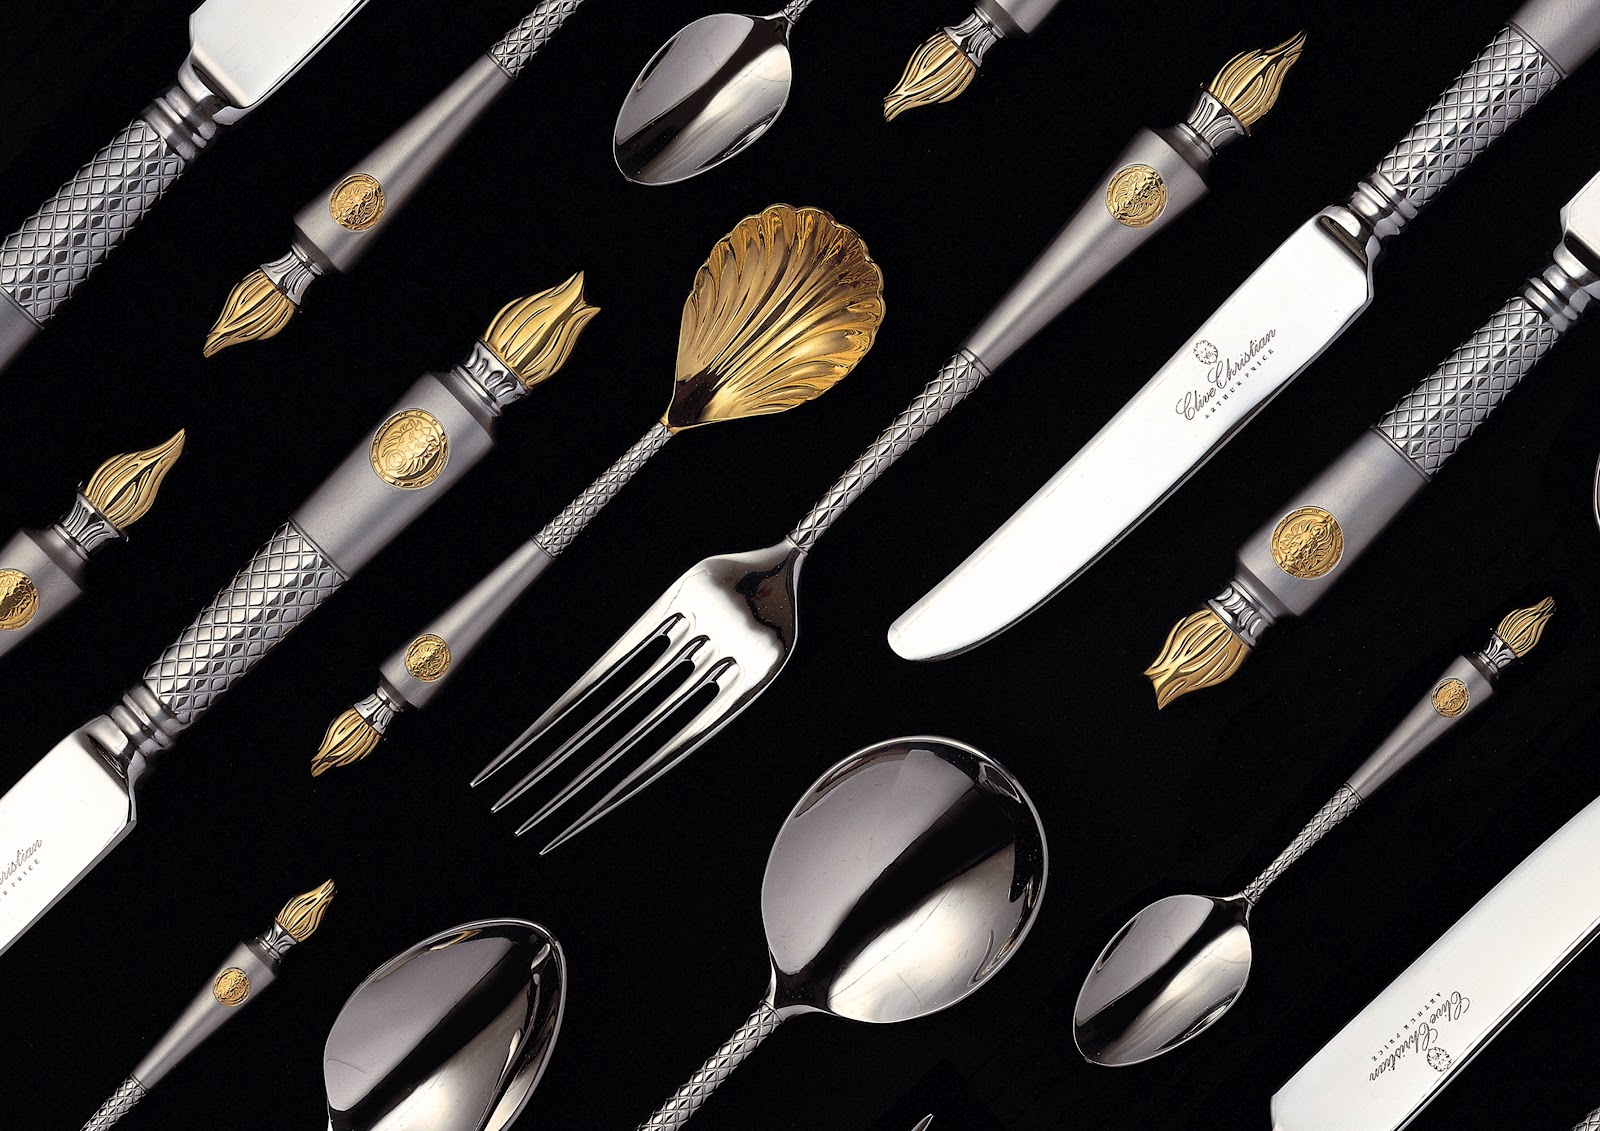 High End Cutlery Tradition Interiors Of Nottingham Clive Christian Empire